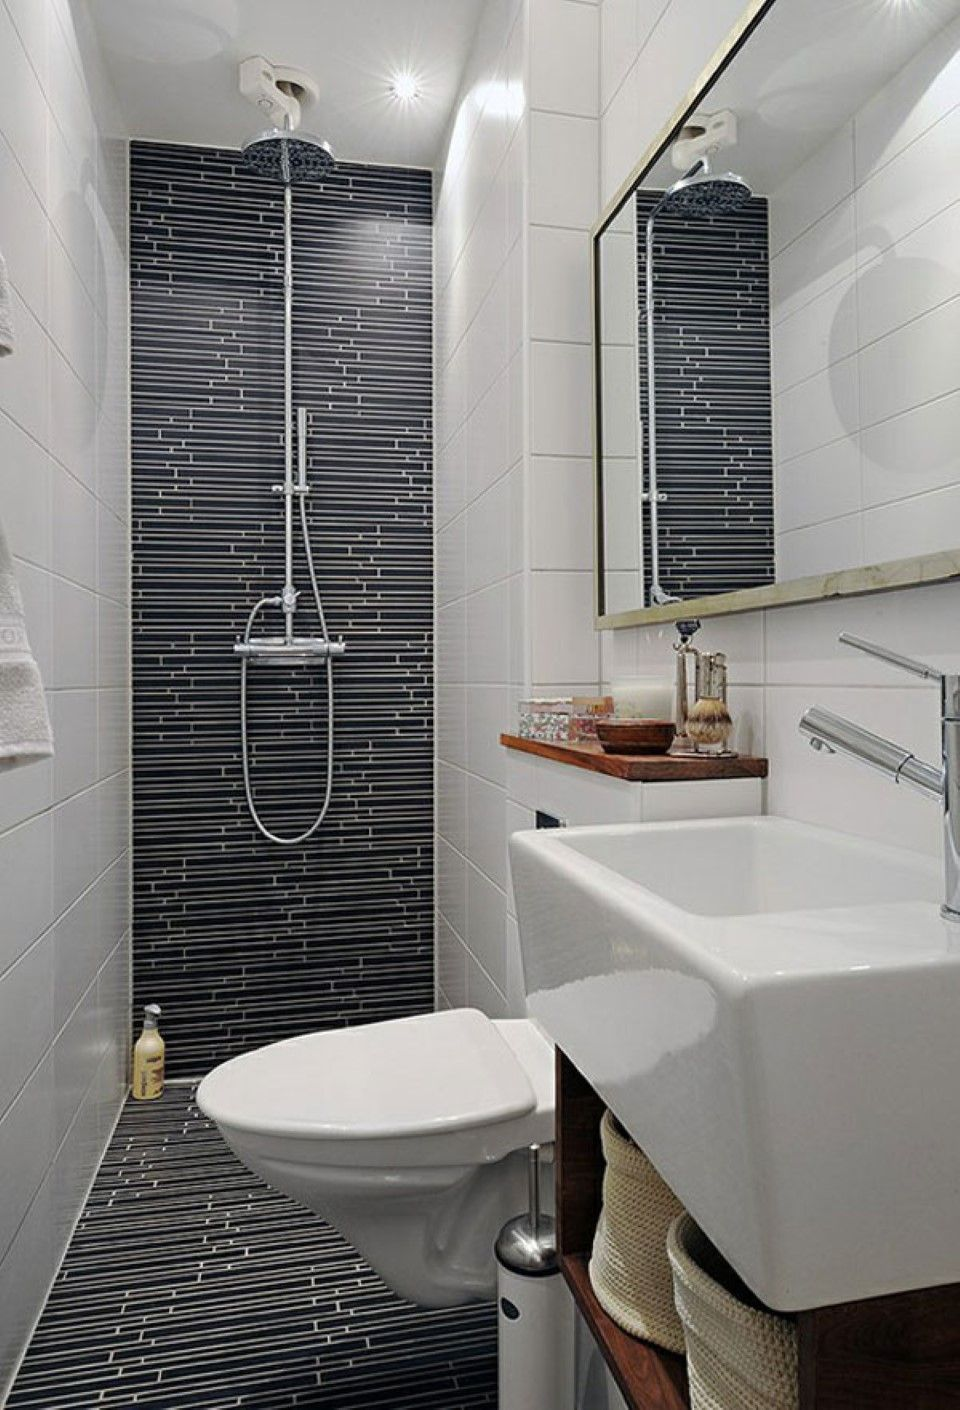 Best Kitchen Gallery: Doorless Shower Ideas In Cool Small Bathroom Design With Floating of Open Showers For Small Bathrooms on rachelxblog.com